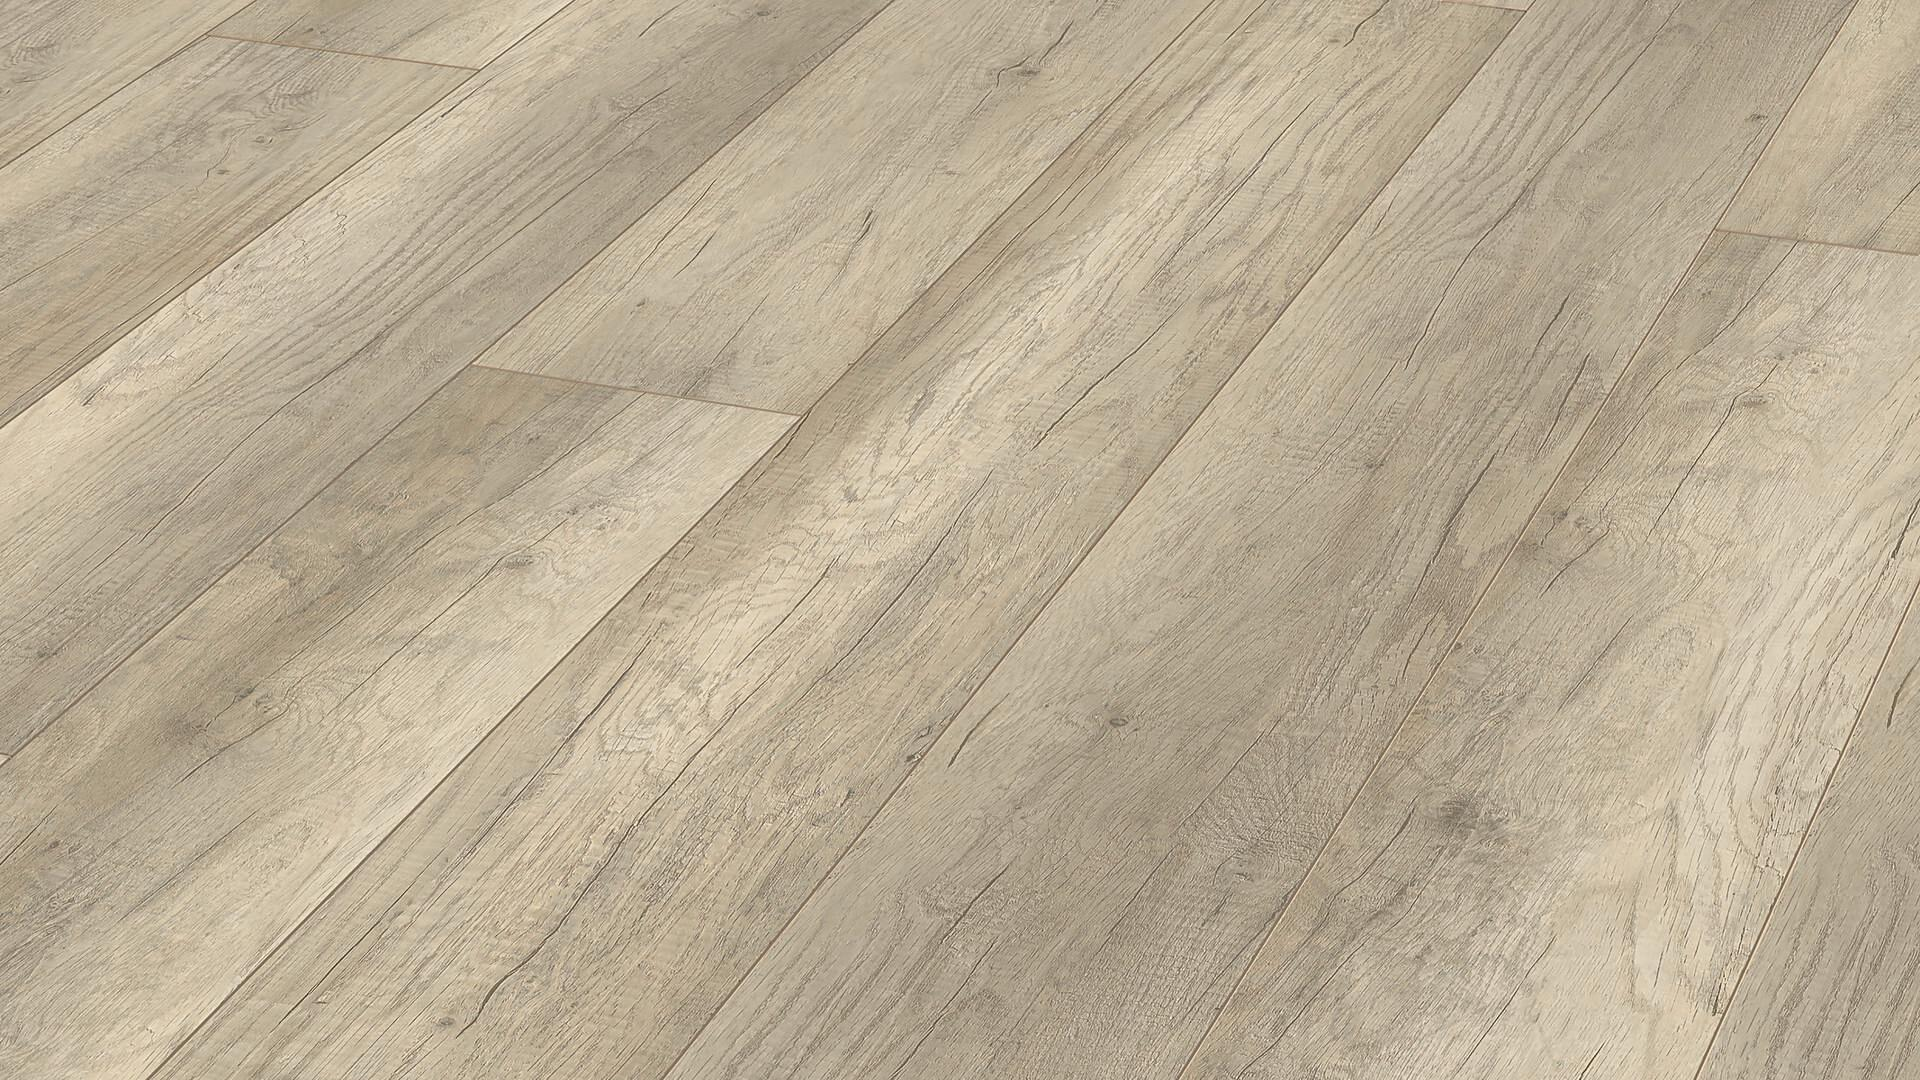 Laminate flooring MeisterDesign. laminate LL 150 Boathouse oak 6188